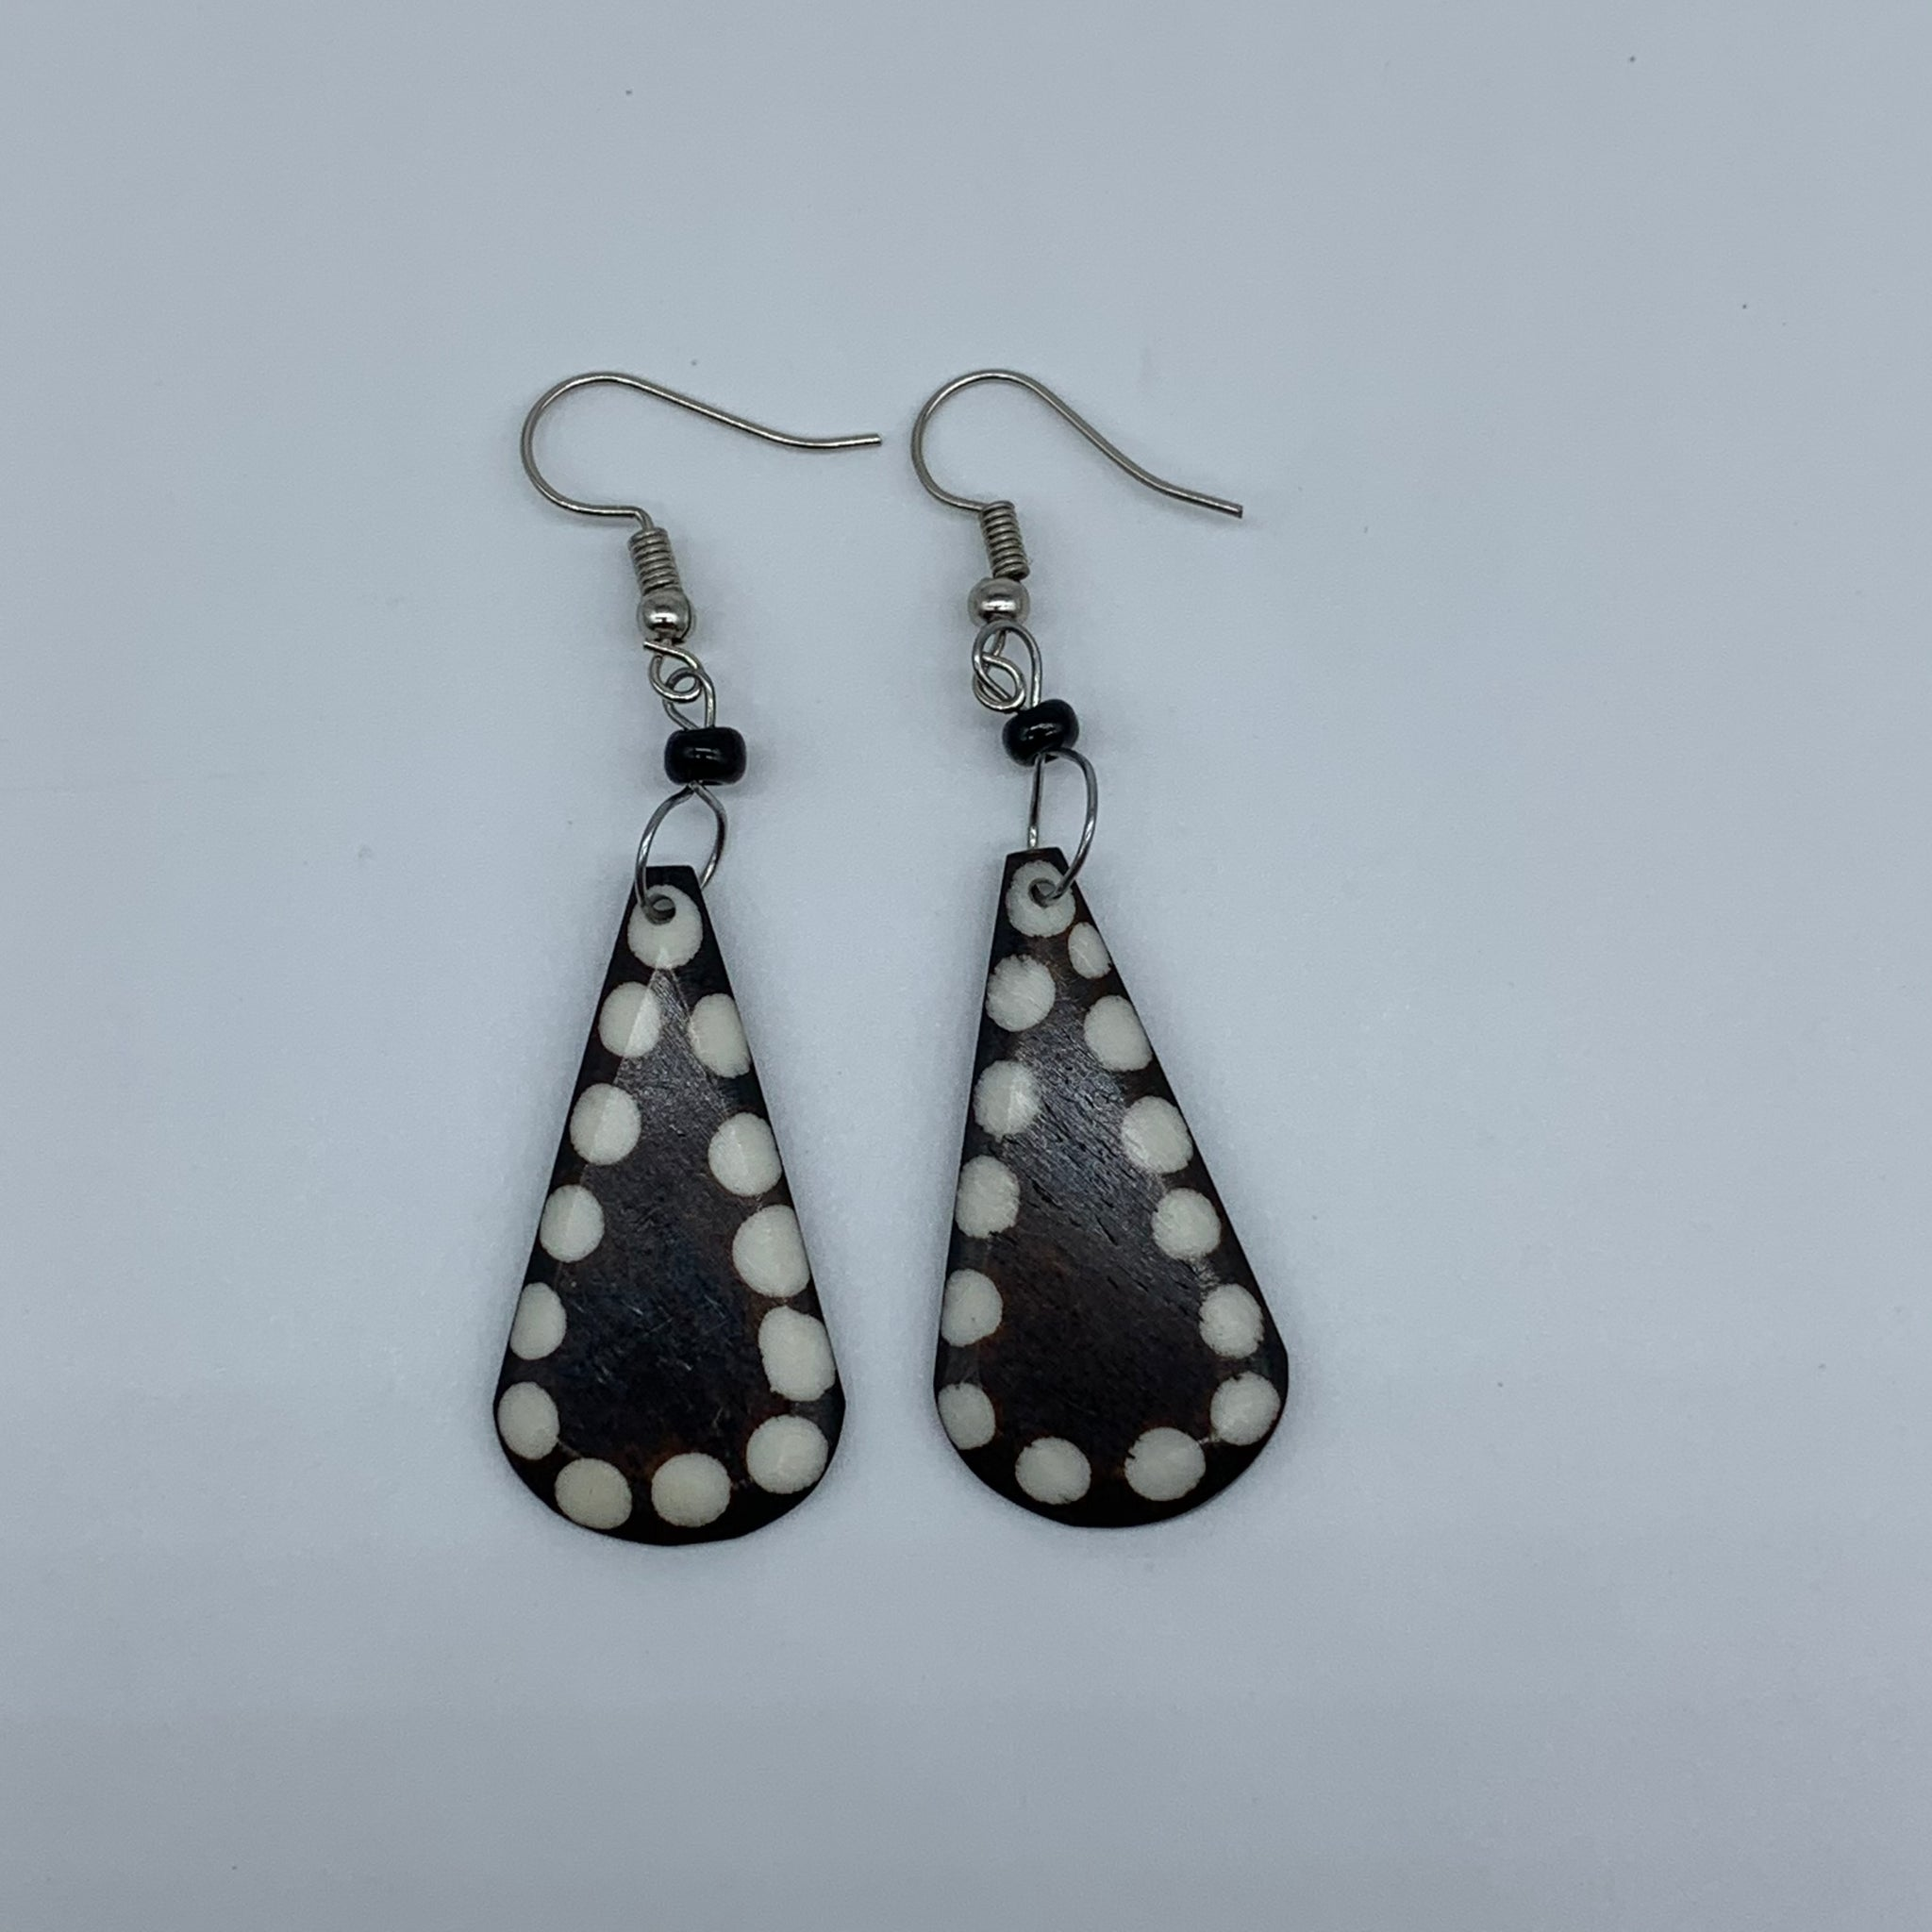 Cow Bone Earrings-Black with White Dots - Lillon Boutique